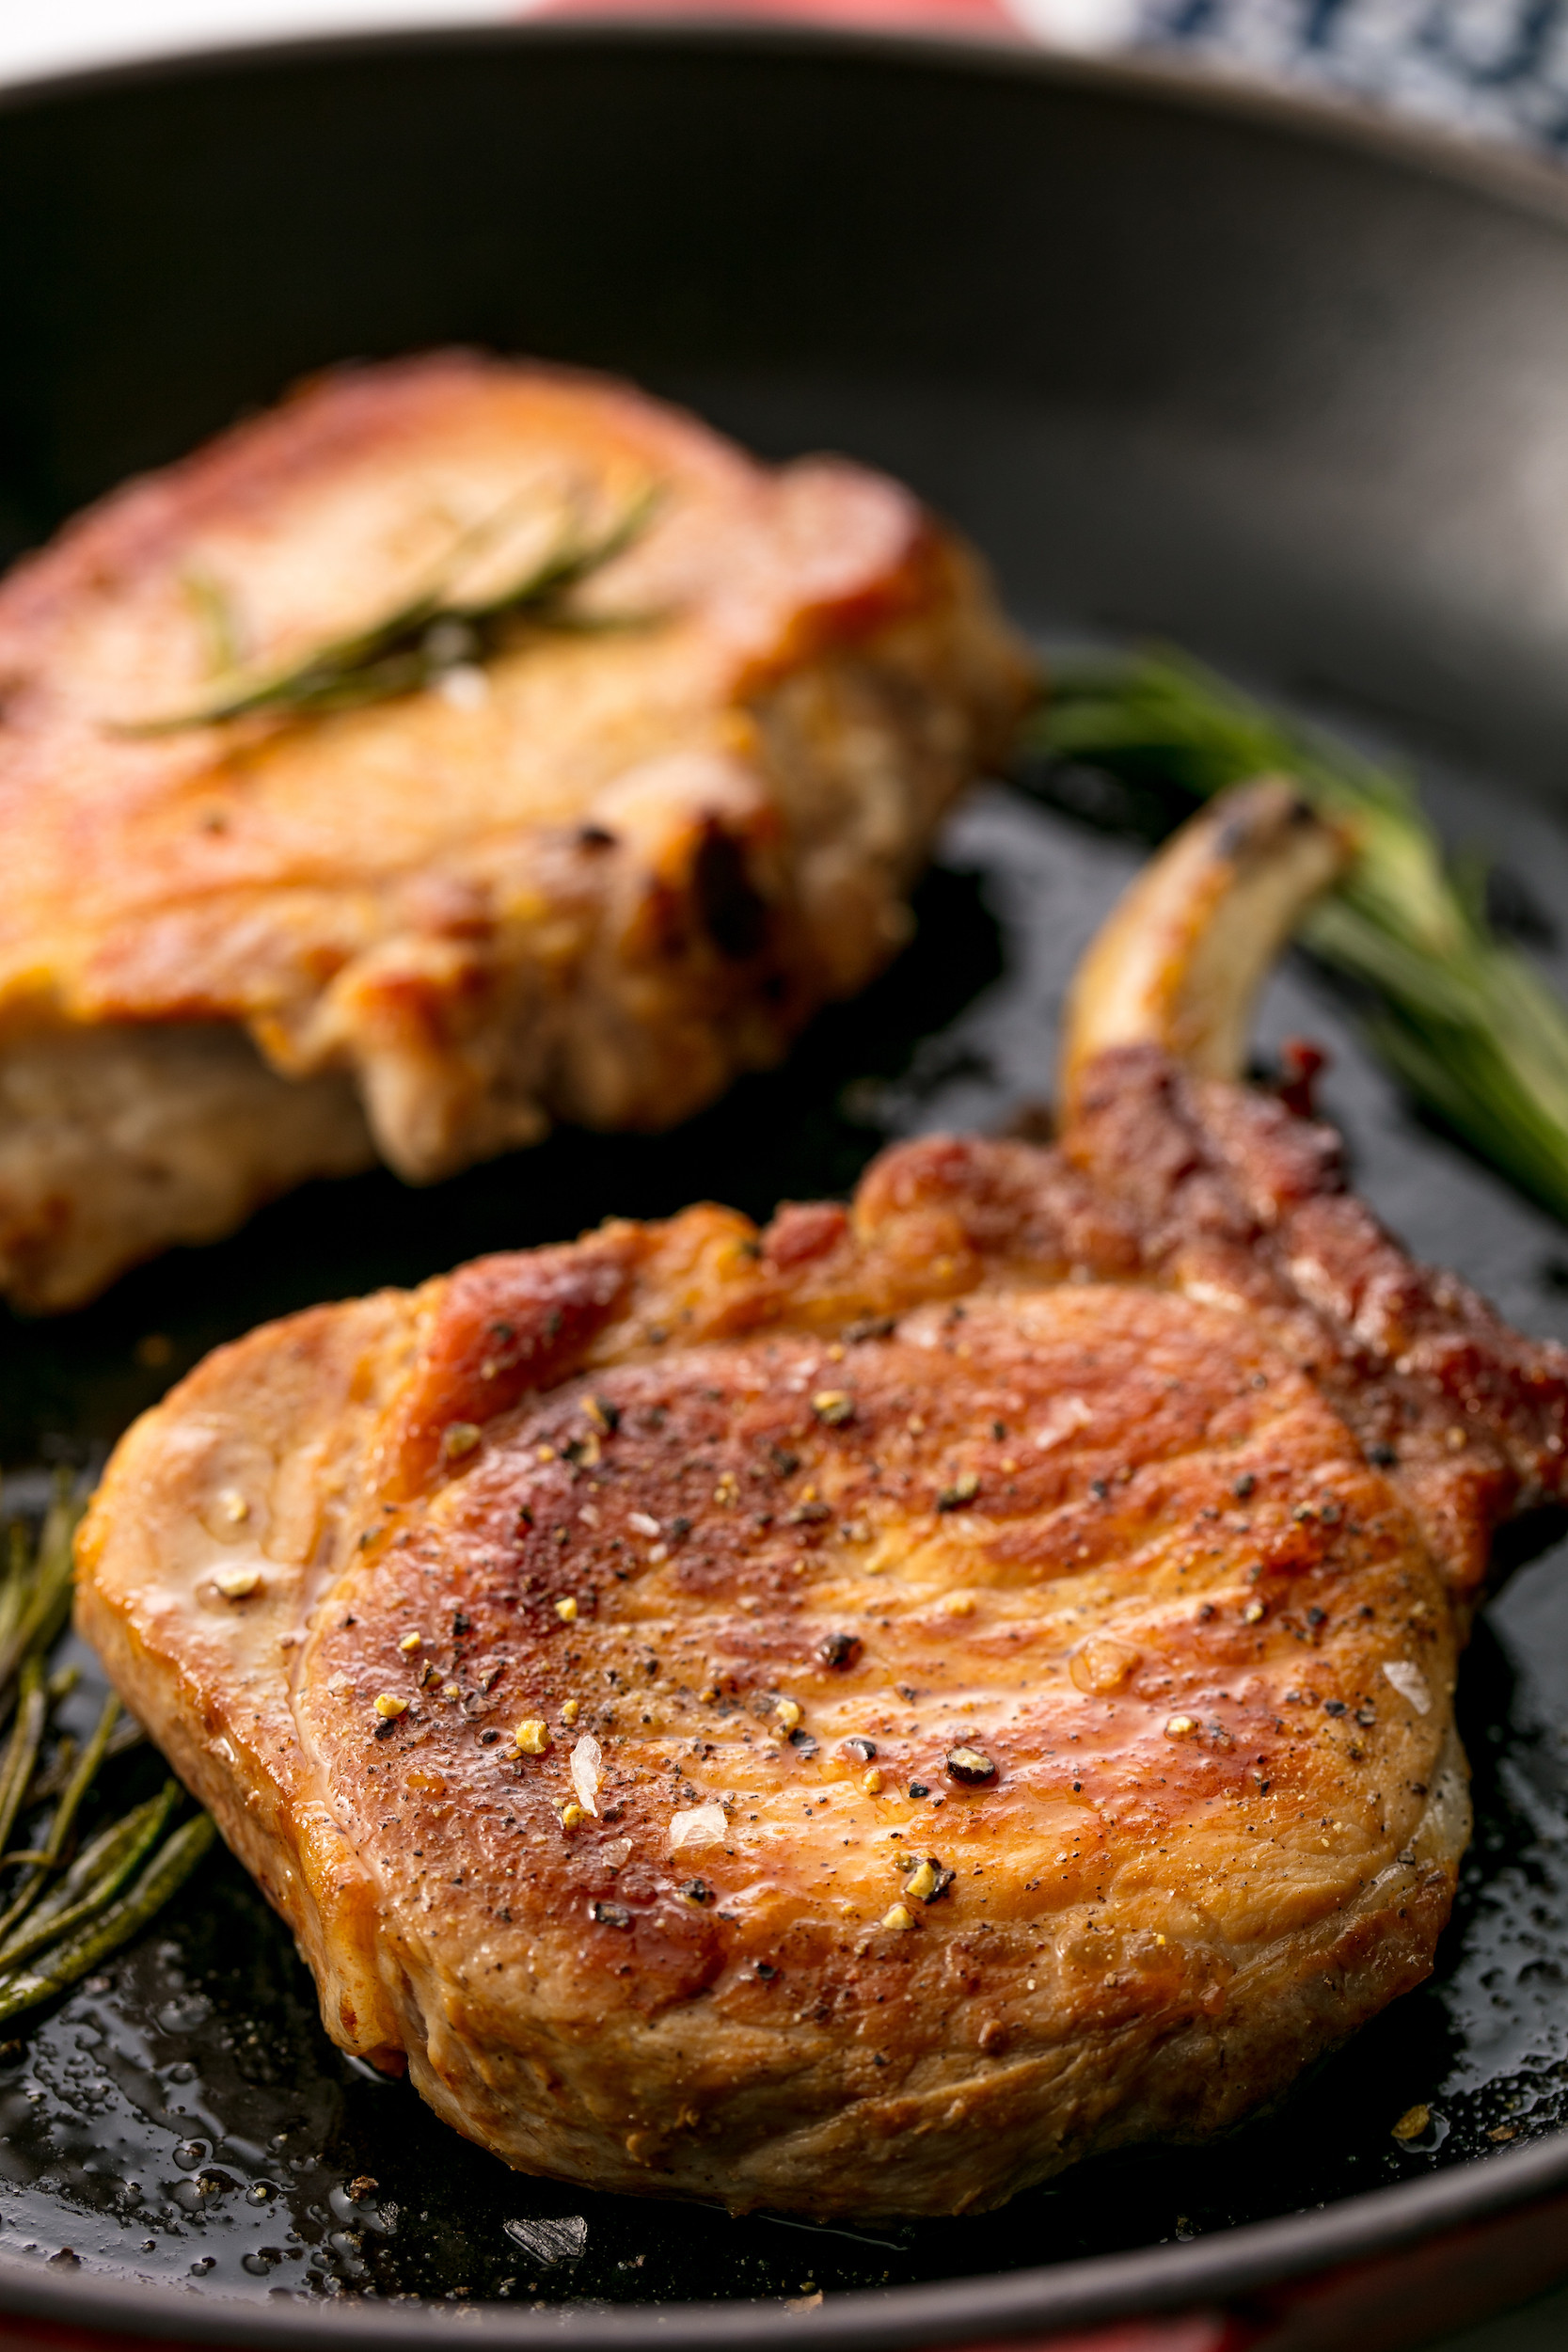 Cook Pork Chops  20 Best Pork Chop Recipes How To Cook Pork Chops—Delish